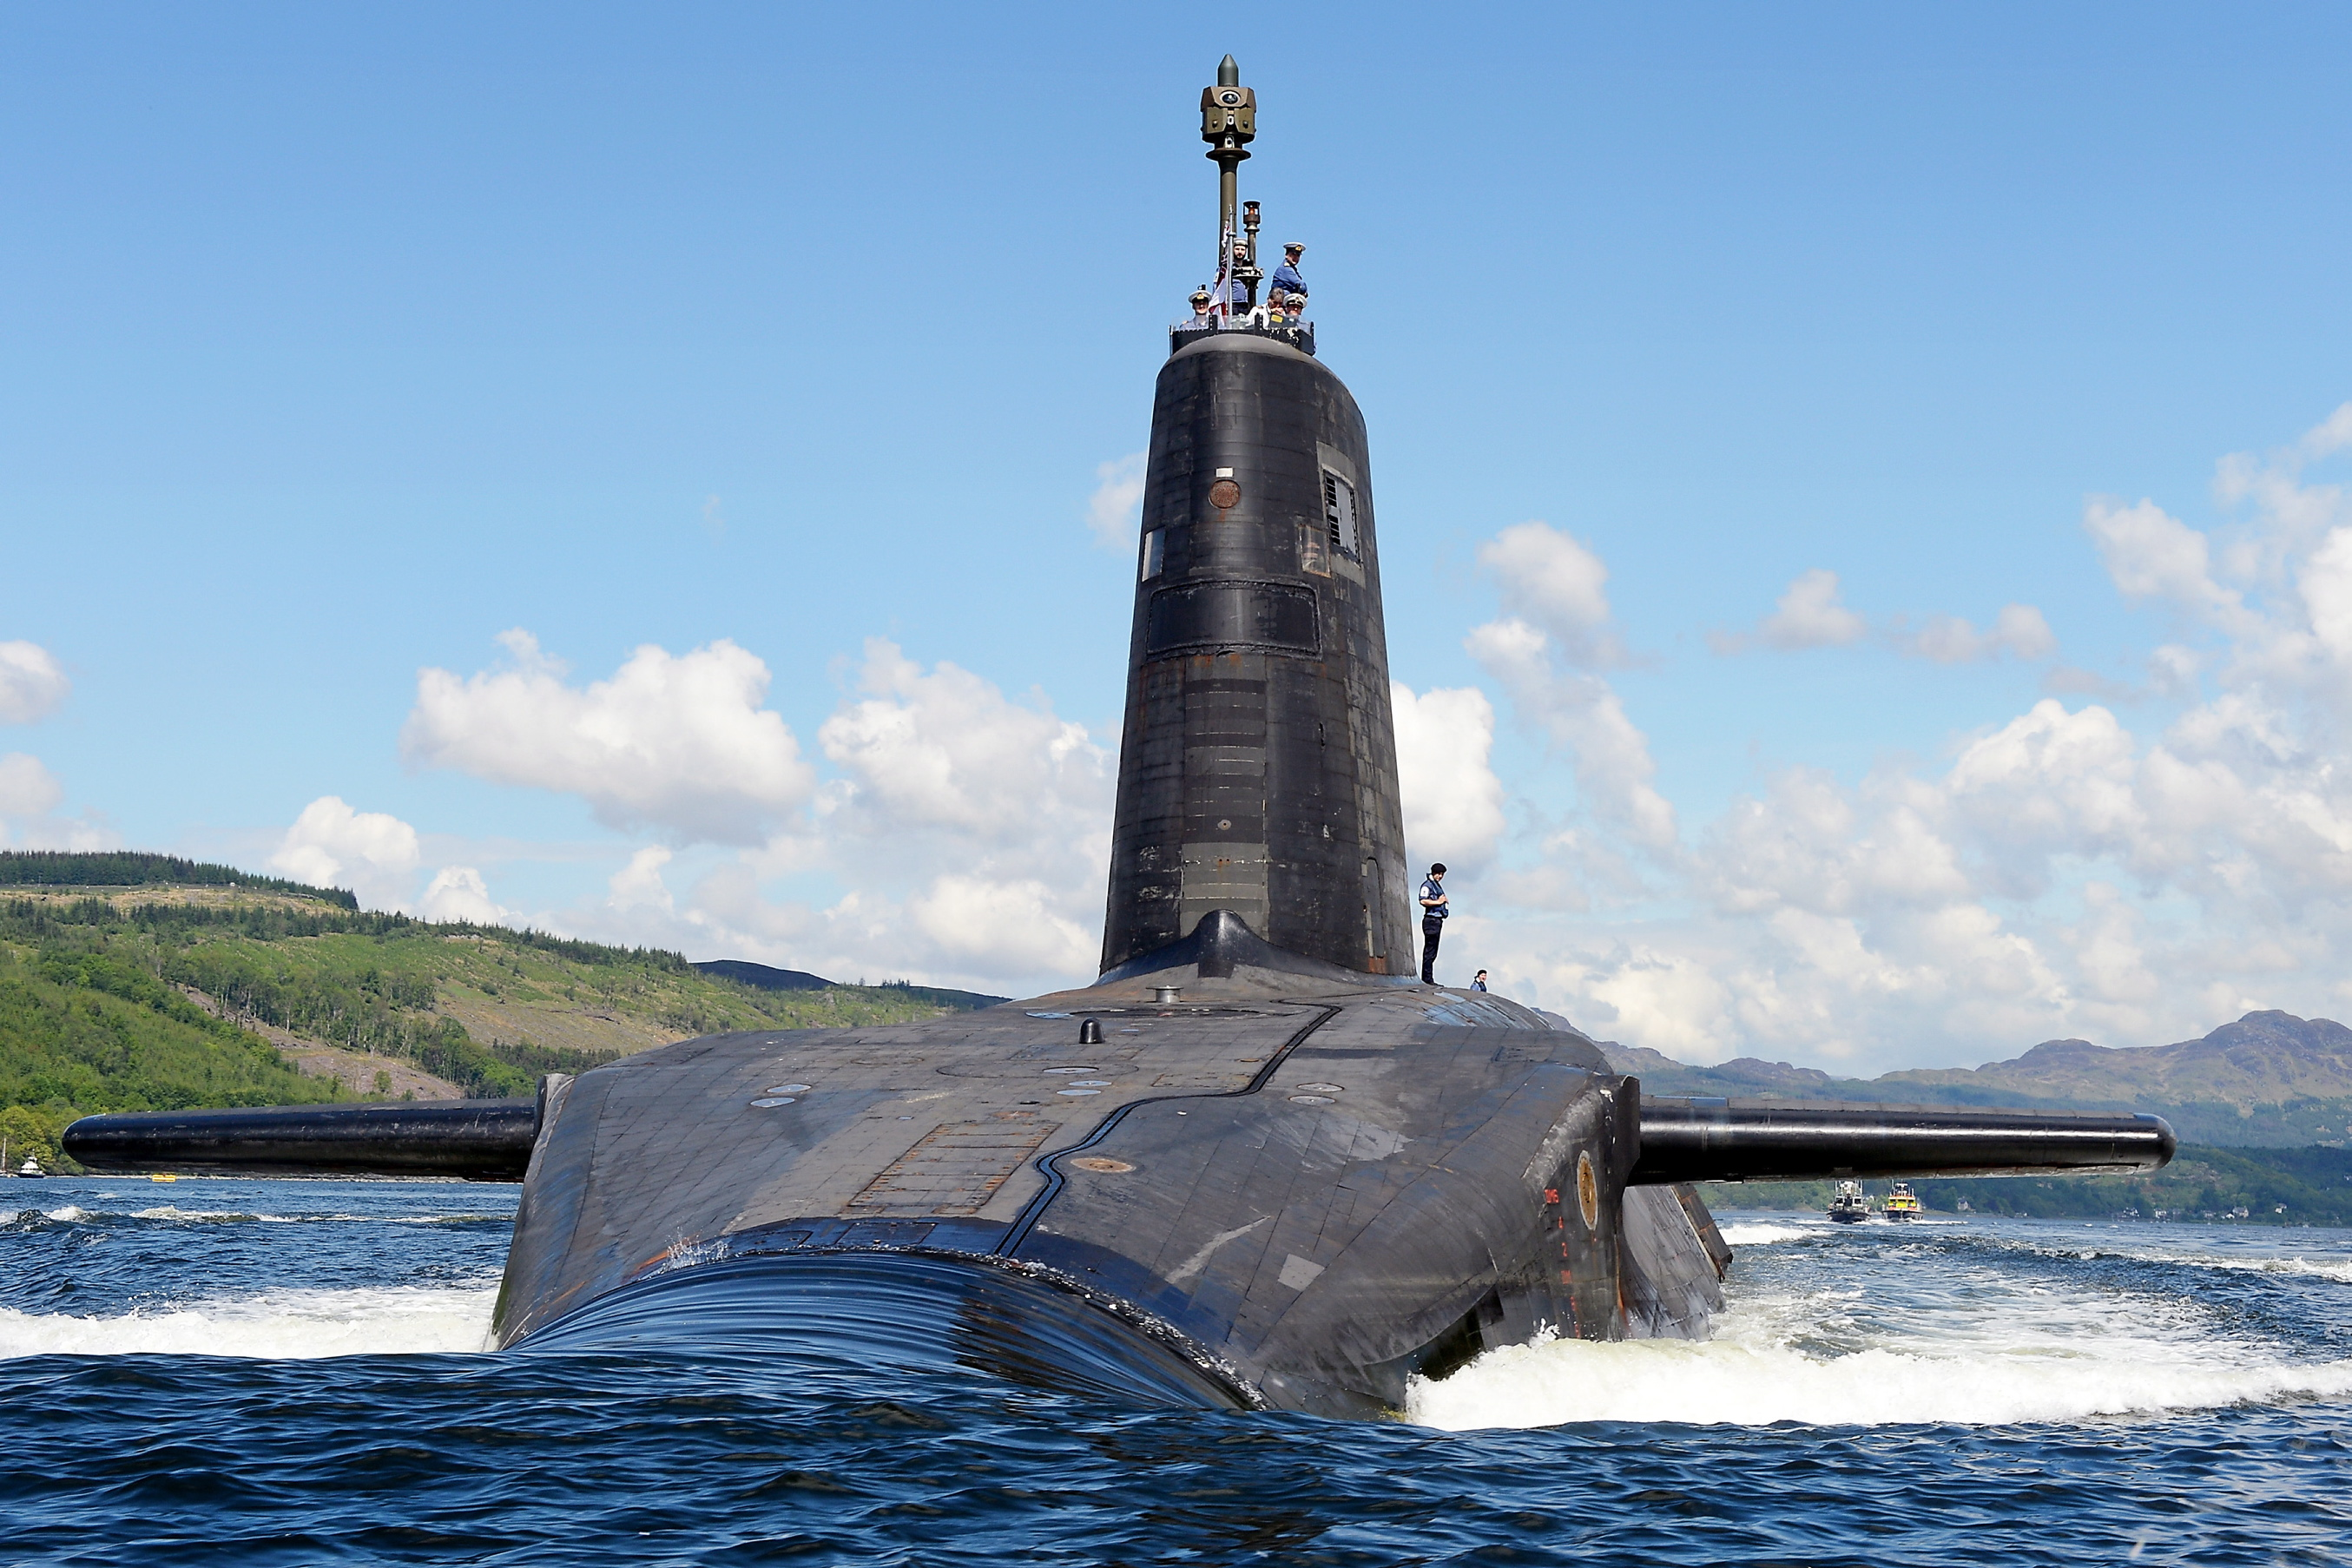 Royal Navy submarine HMS Victorious departs HMNB Clyde. UK MoD Photo